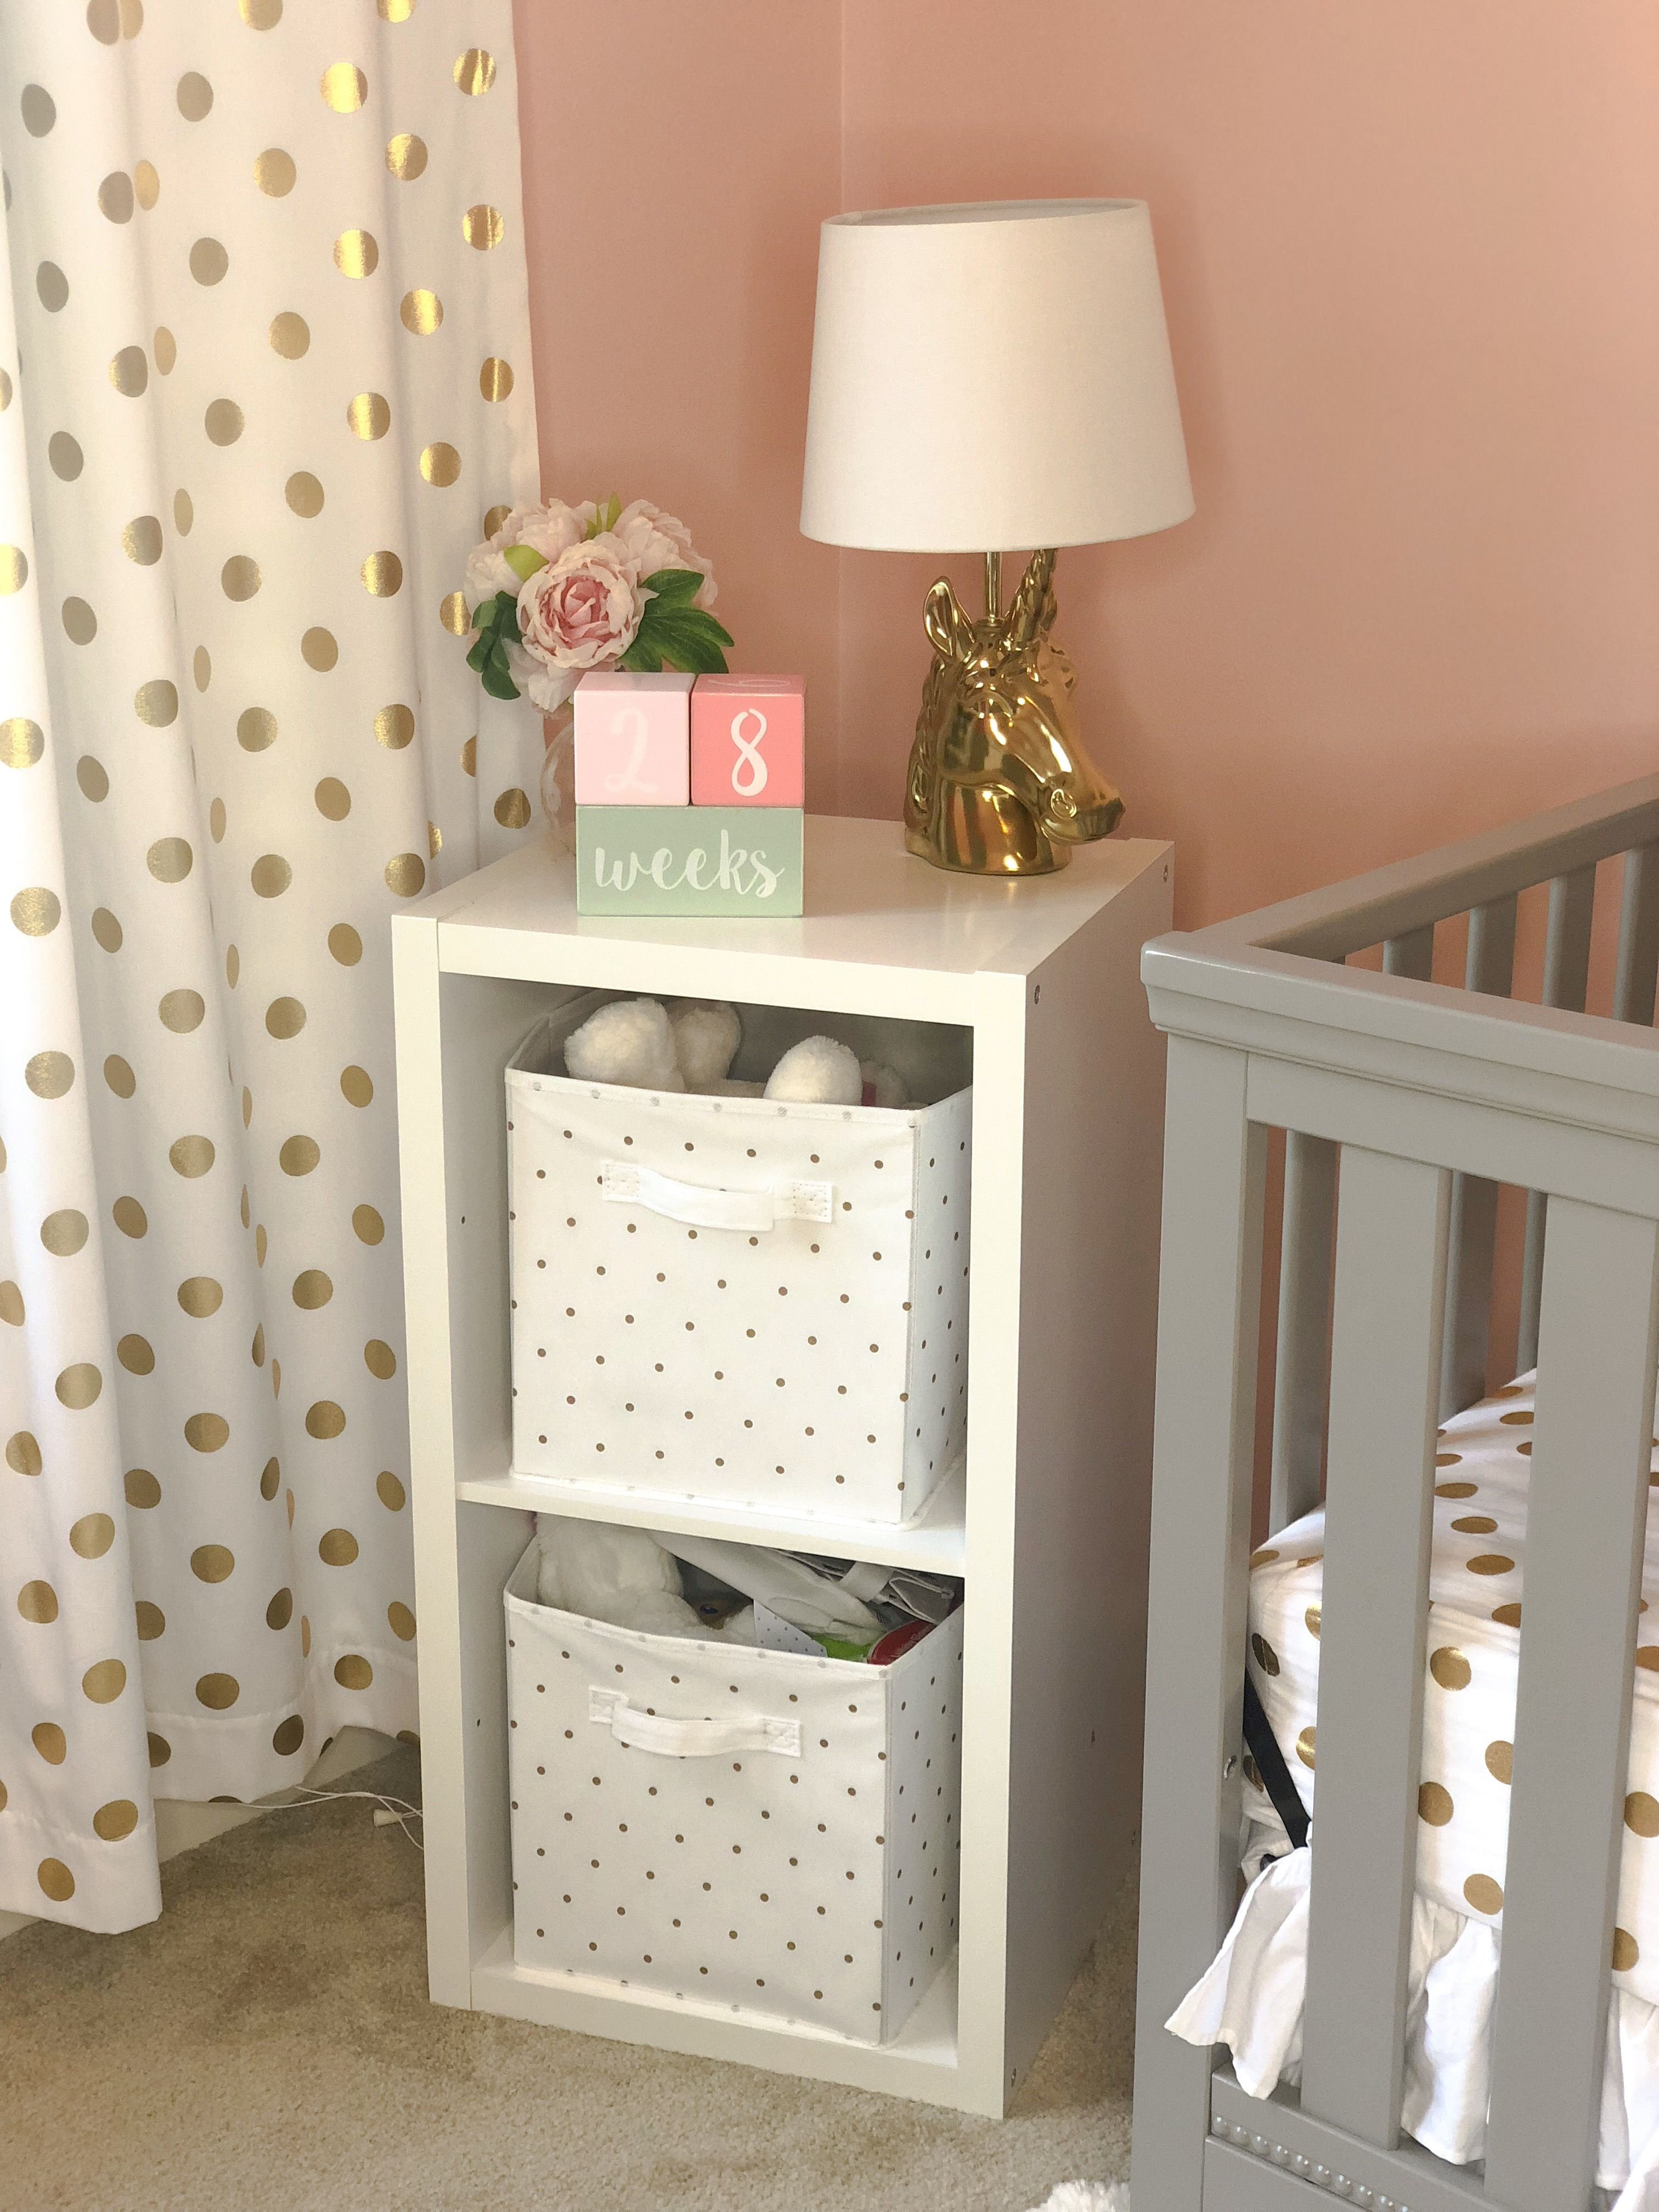 Karoline's Nursery Reveal: Gray, Pink, and Gold Nursery for Baby Girl images